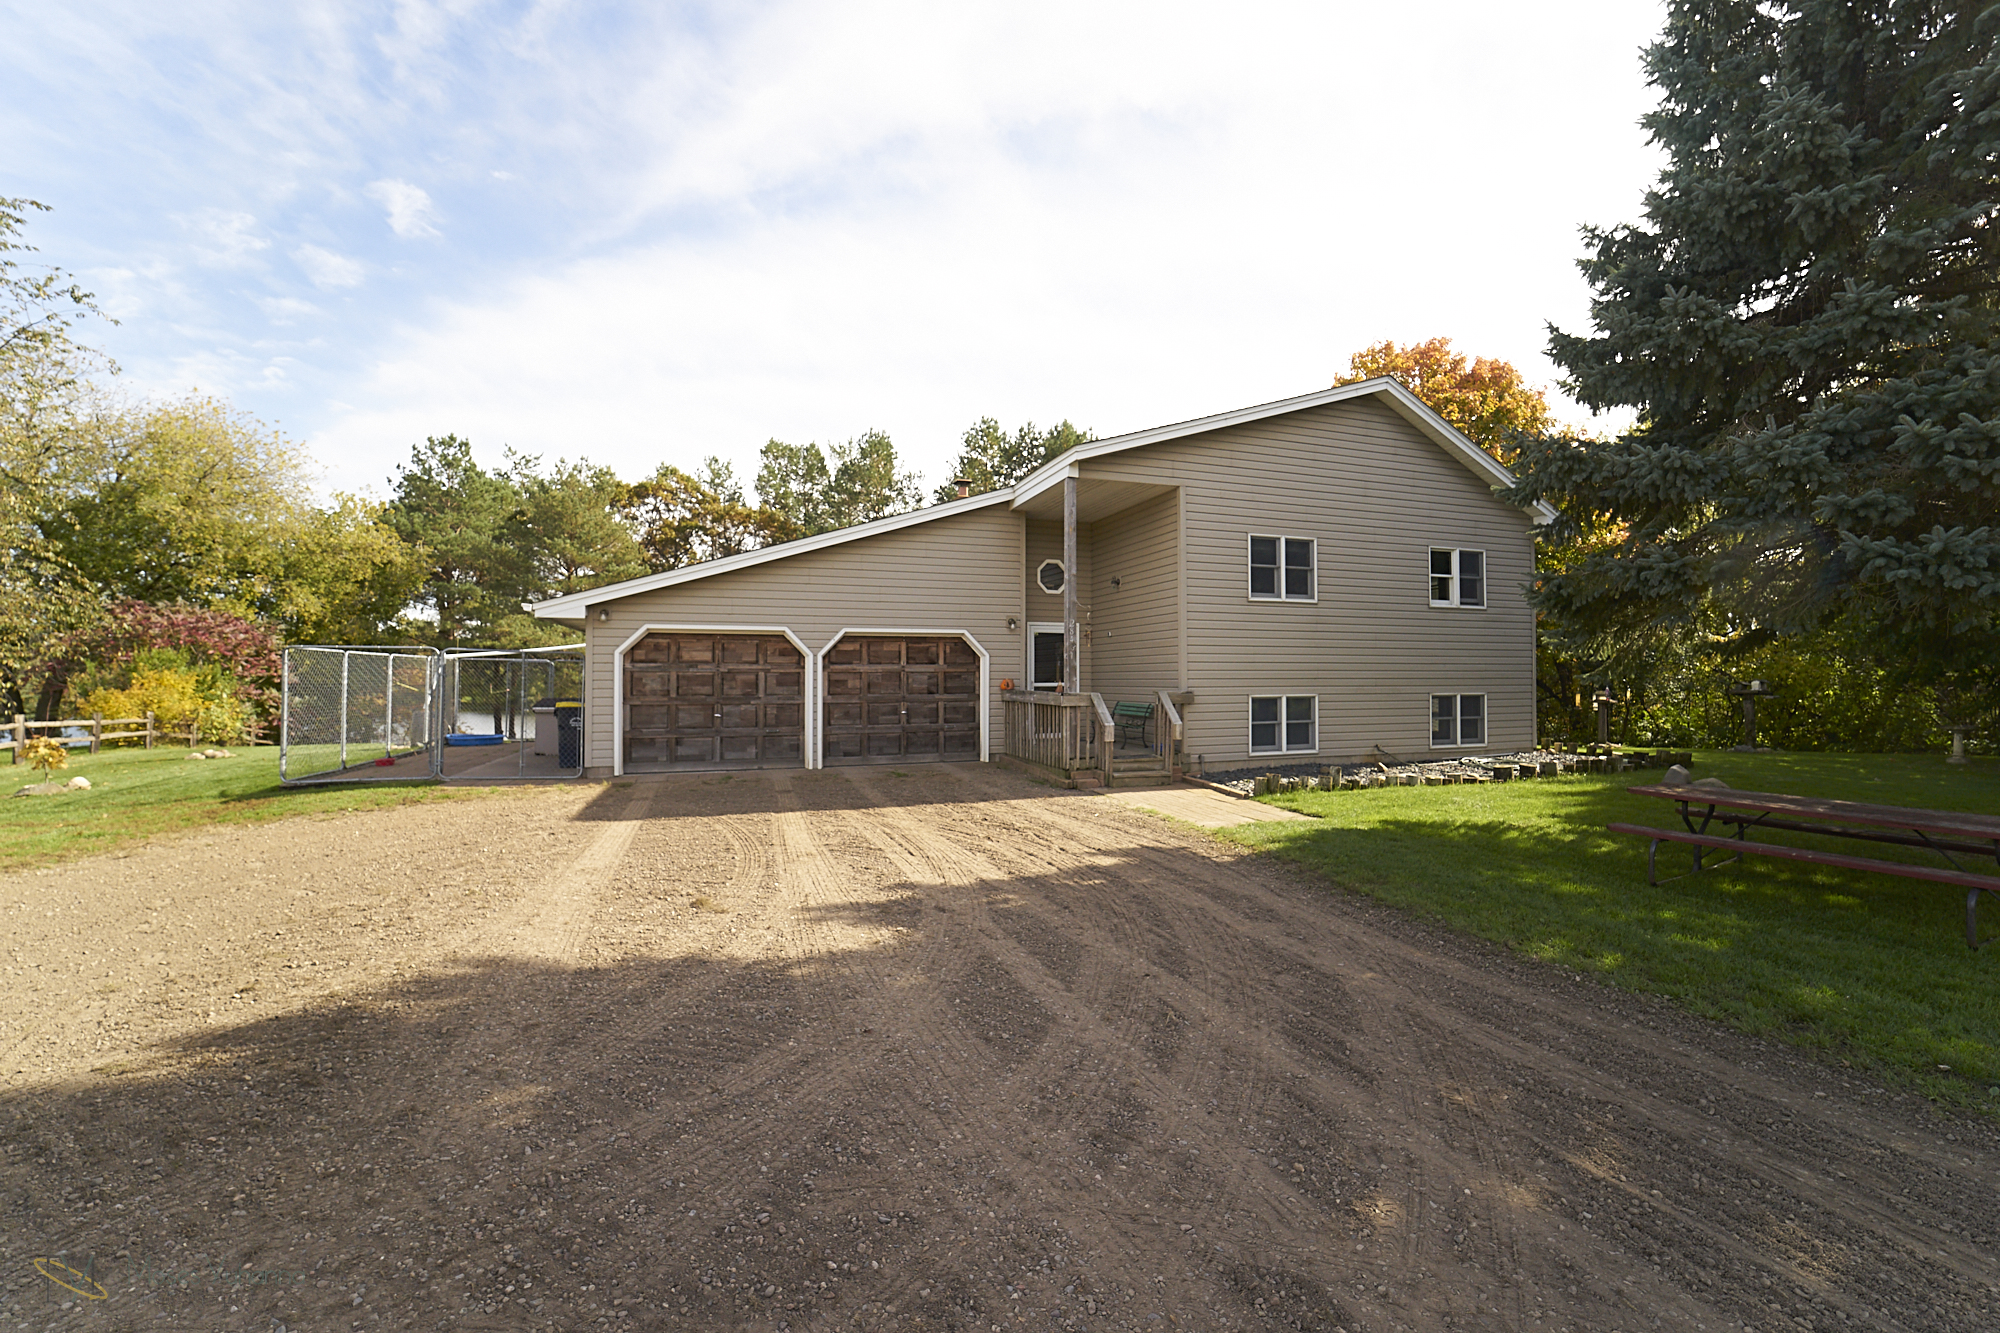 28431-jeffery-avenue-chisago-city-mn-front.jpg